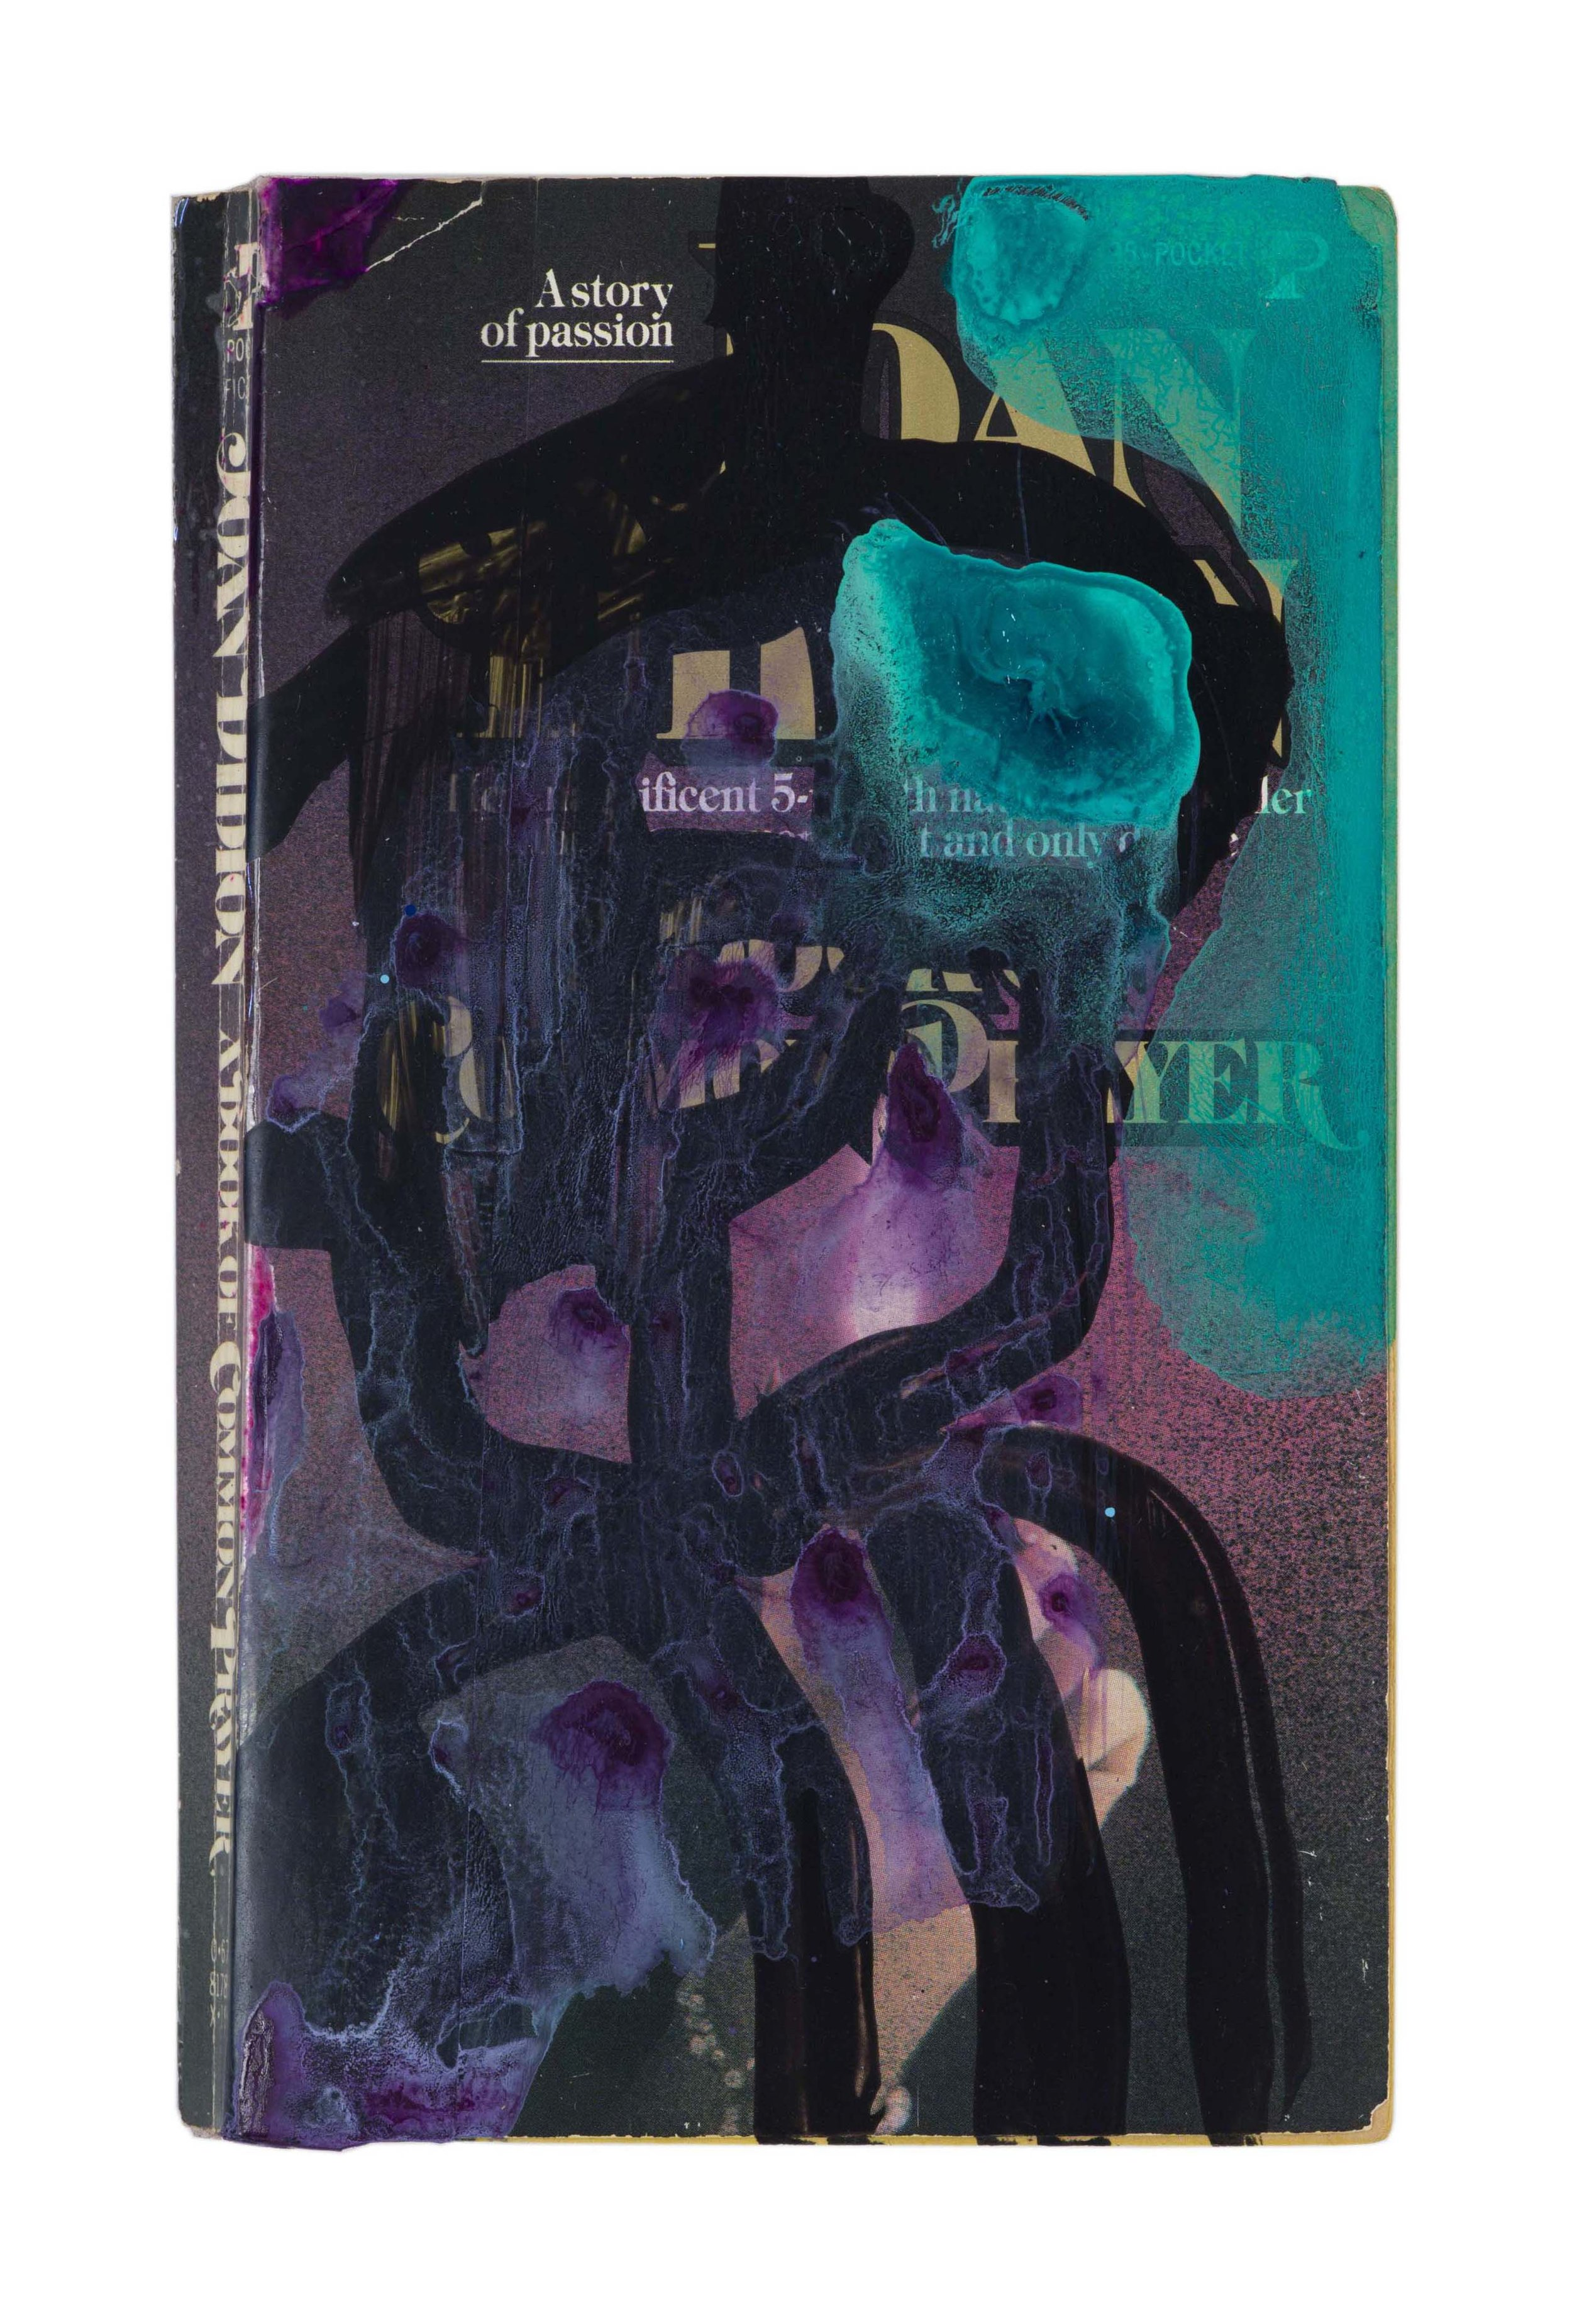 Drew Beattie and Ben Shepard  A Book of Common Prayer  acrylic and spray paint on used book 2016 7 x 4 ¼ inches